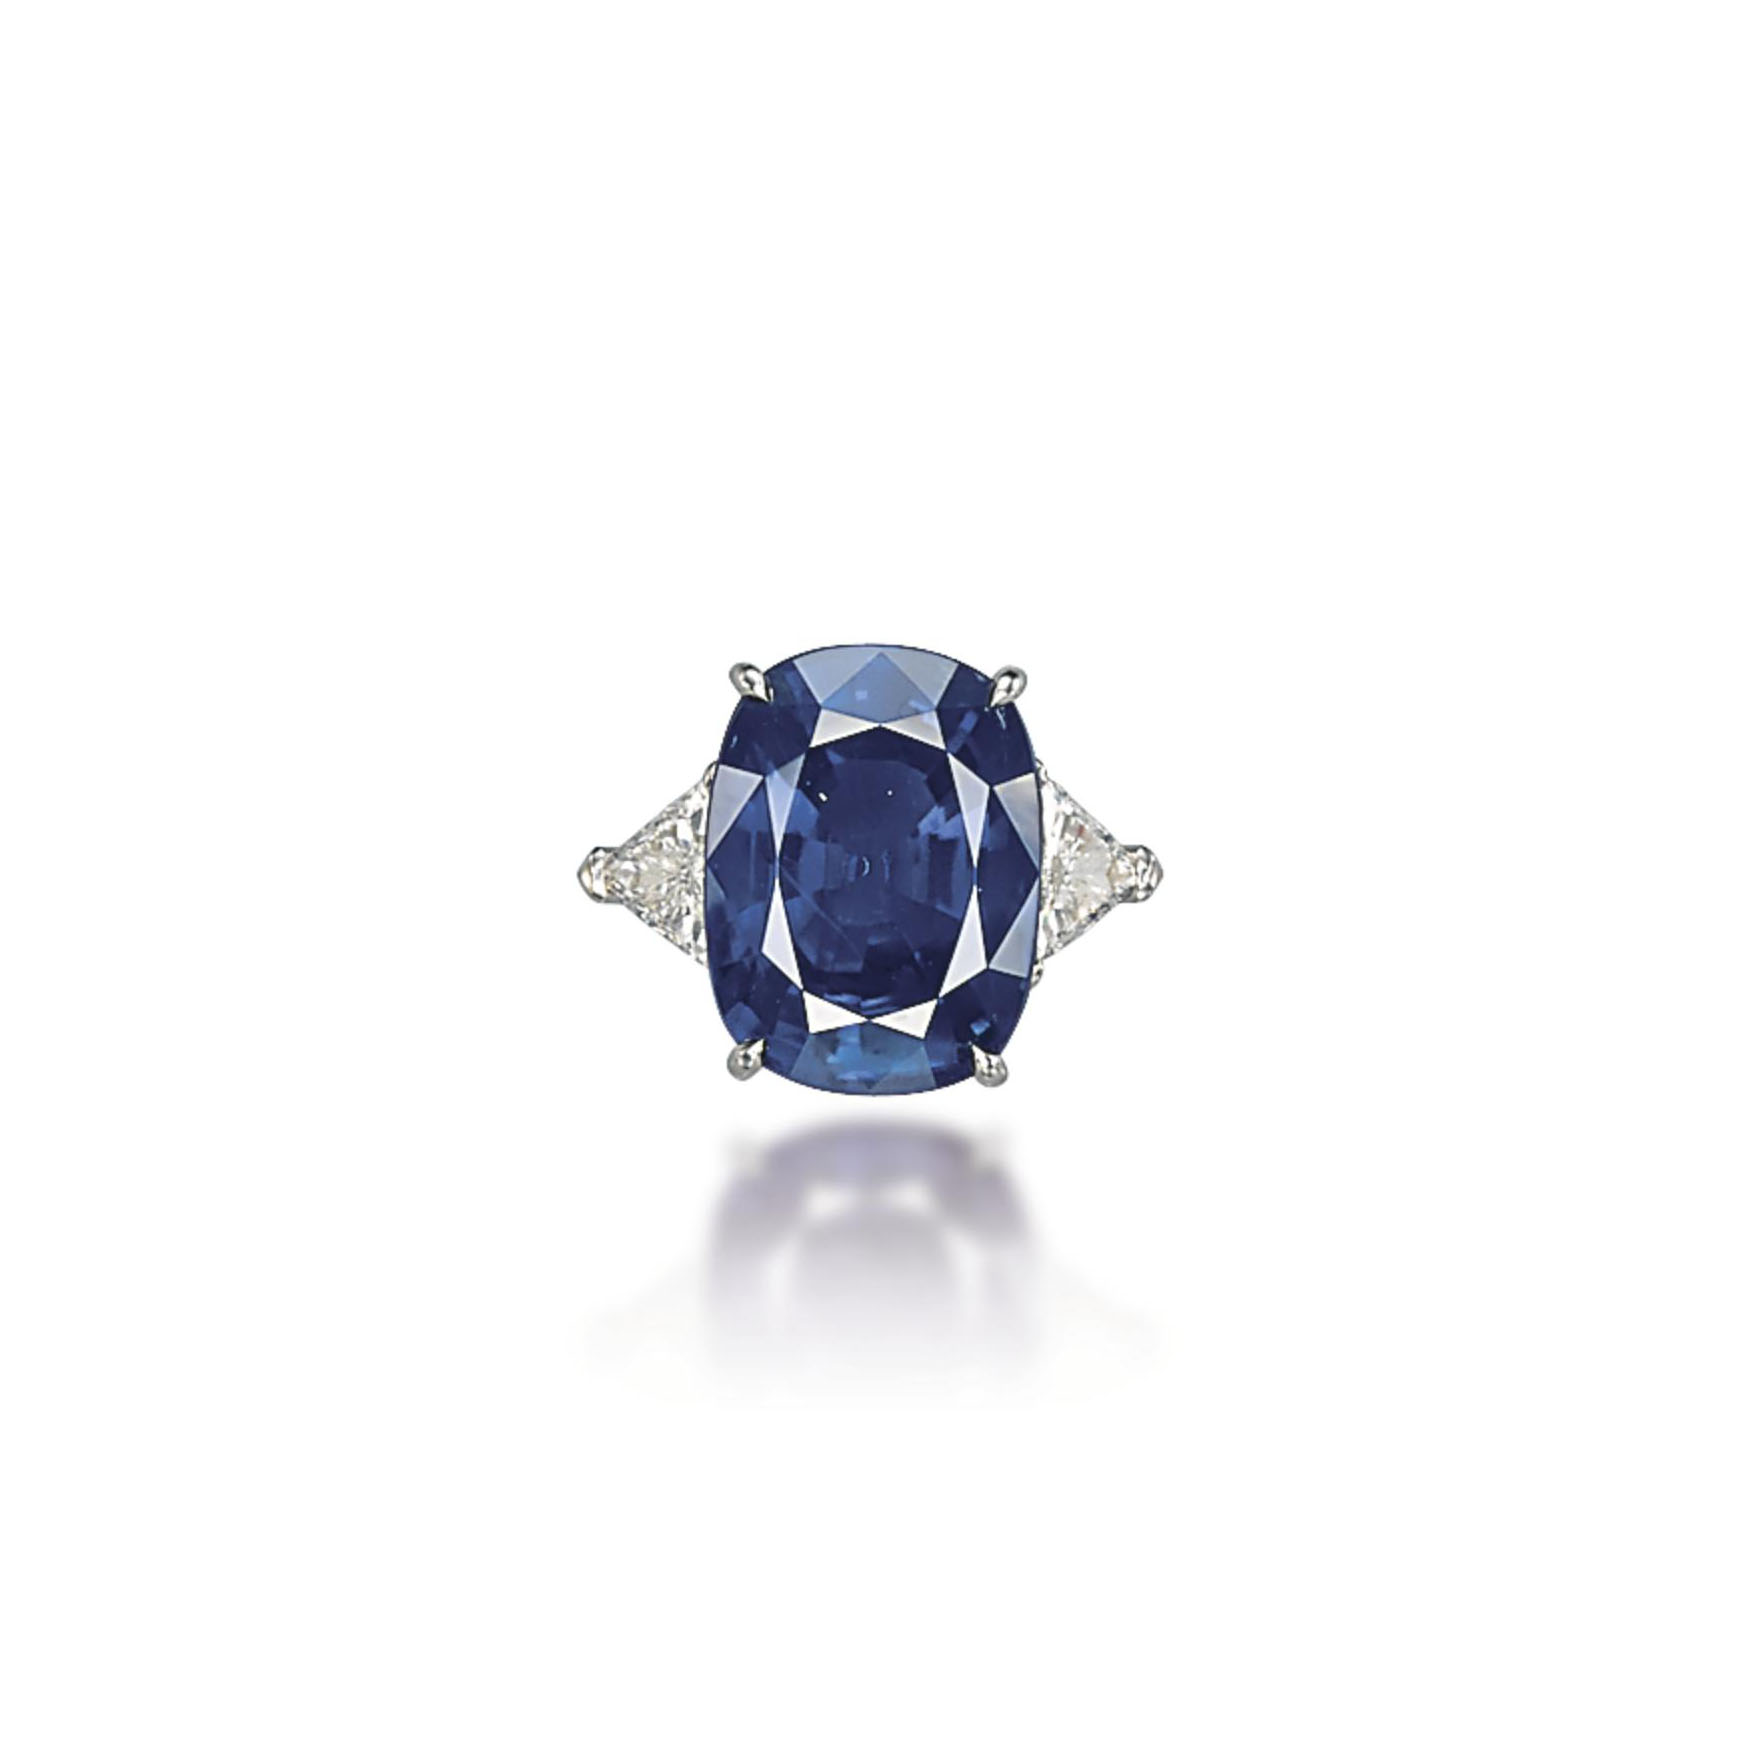 A SAPPHIRE AND DIAMOND RING, BY CHATILA